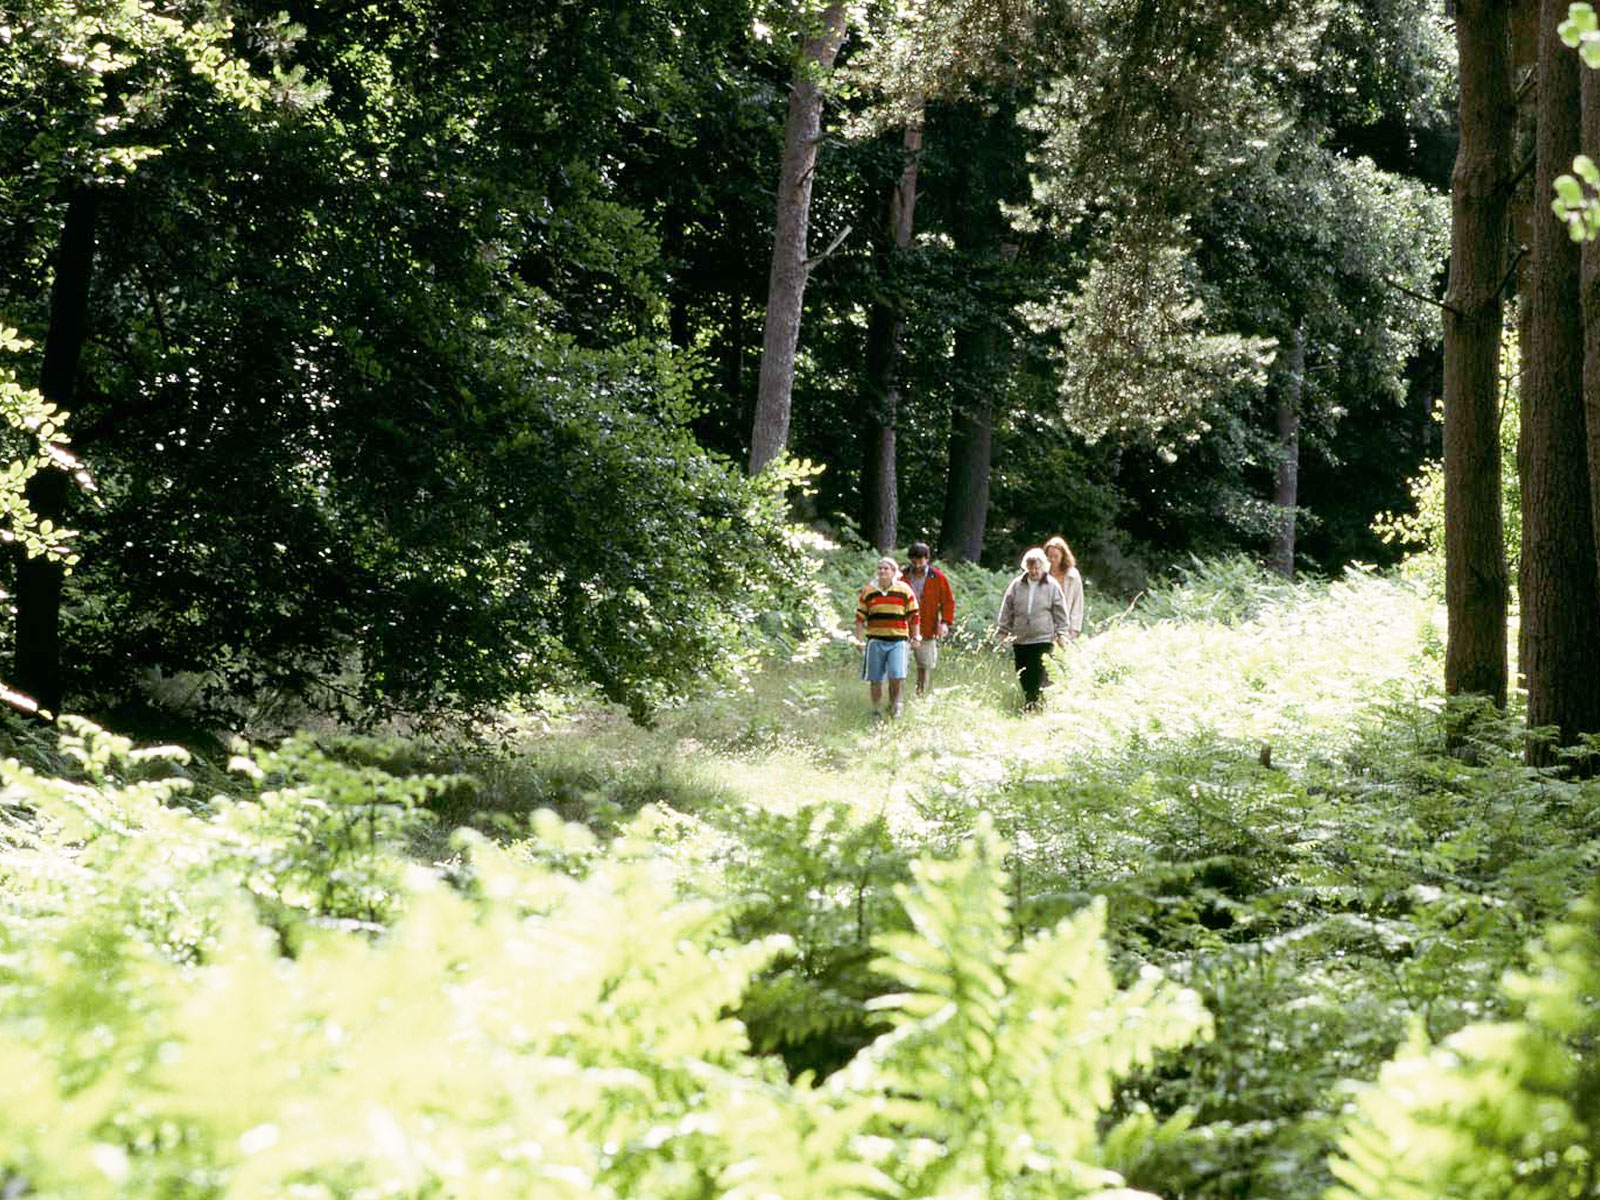 Peddars Way at Brettenham Heath (picture by Andy Tryner, courtesy of Natural England / National Trails)